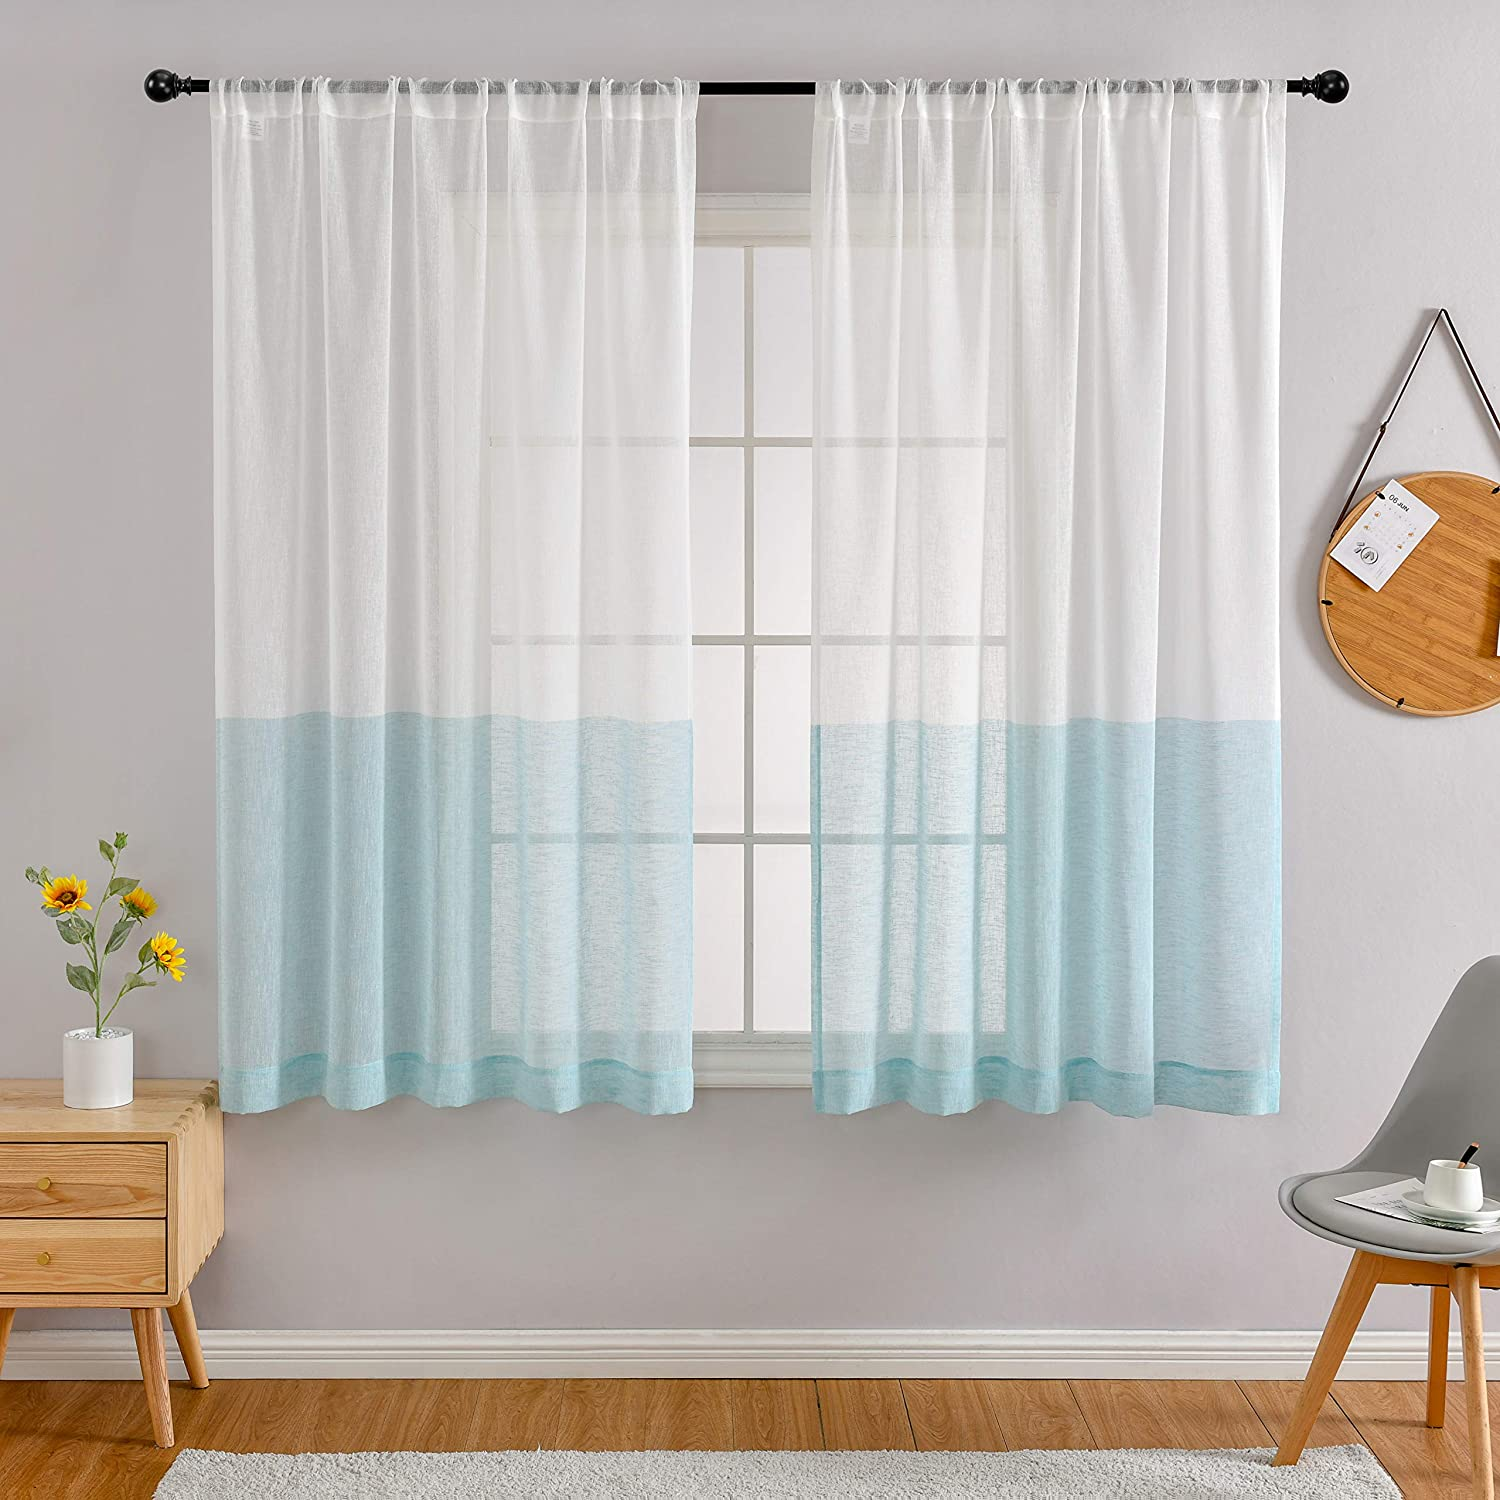 MYSKY HOME Sheer Curtains 72 Inches Length, Linen Look Aque Blue and White Color Block Stripe Curtain Panels Rod Pocket Window Drape for Living Room Bedroom Farmhouse